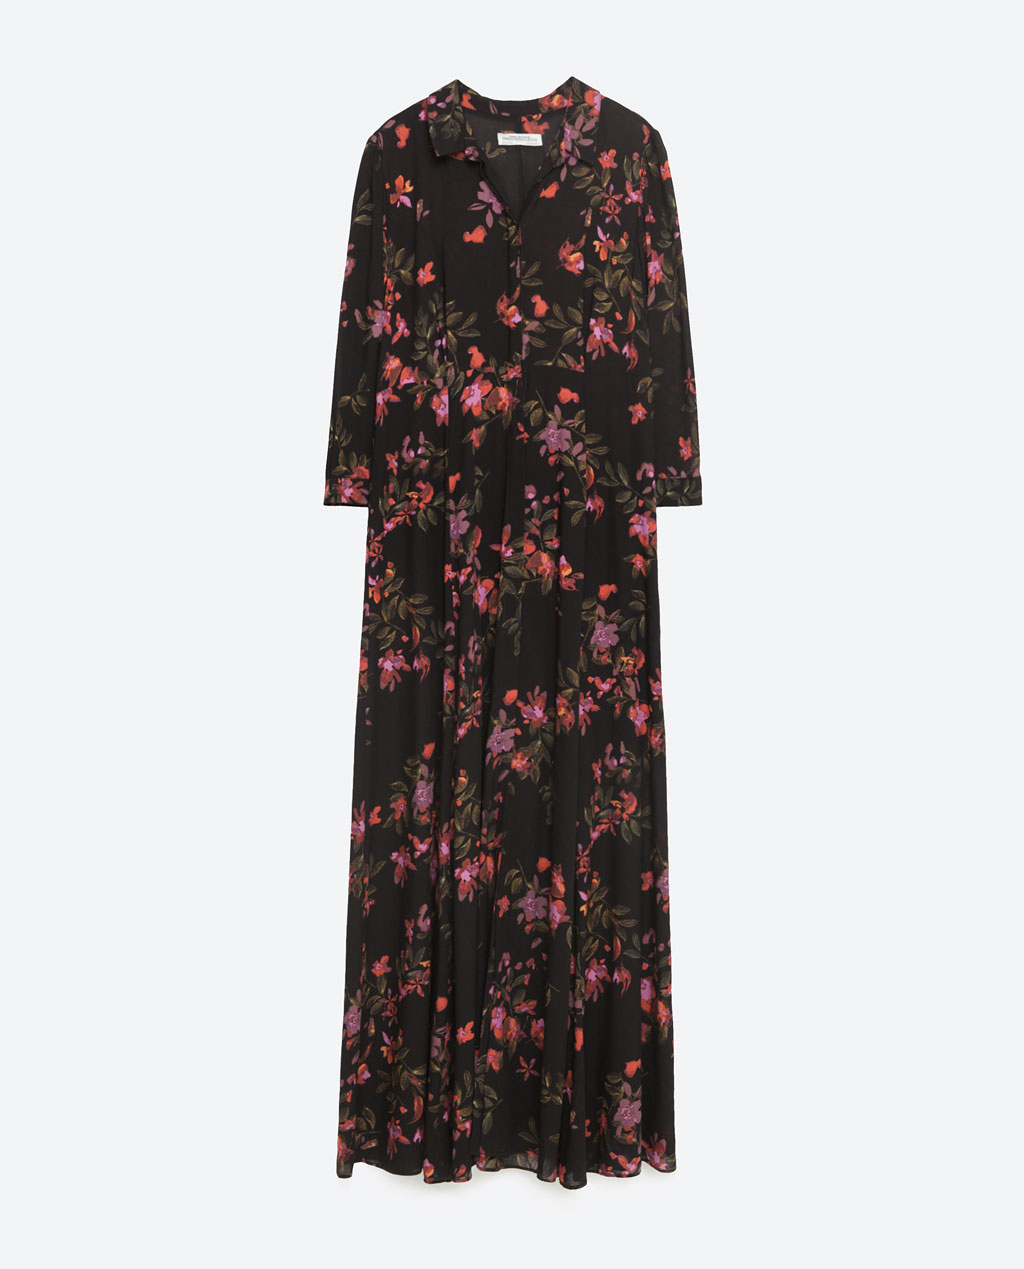 Zara - LONG DRESS WITH FLORAL PRINT 39.99